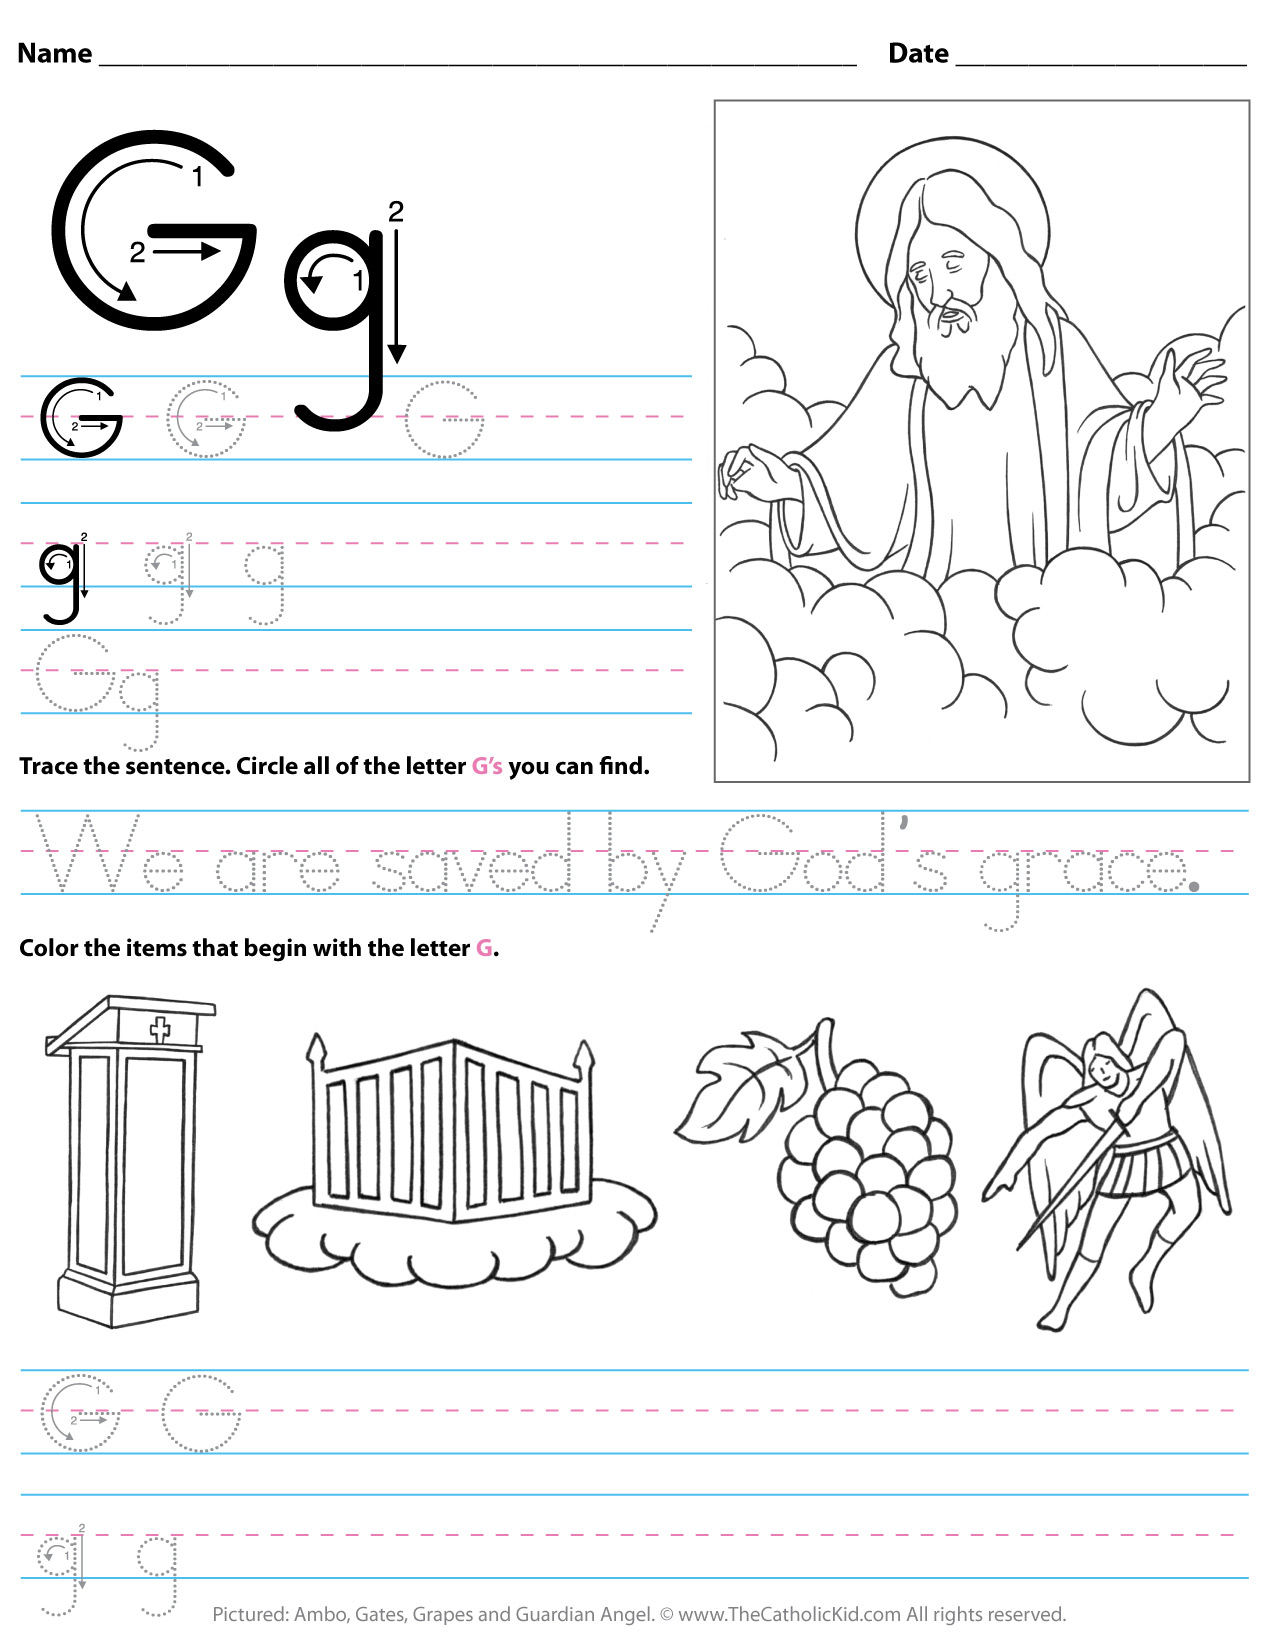 Catholic Alphabet Letter G Worksheet Preschool Kindergarten regarding Letter G Worksheets For Preschool